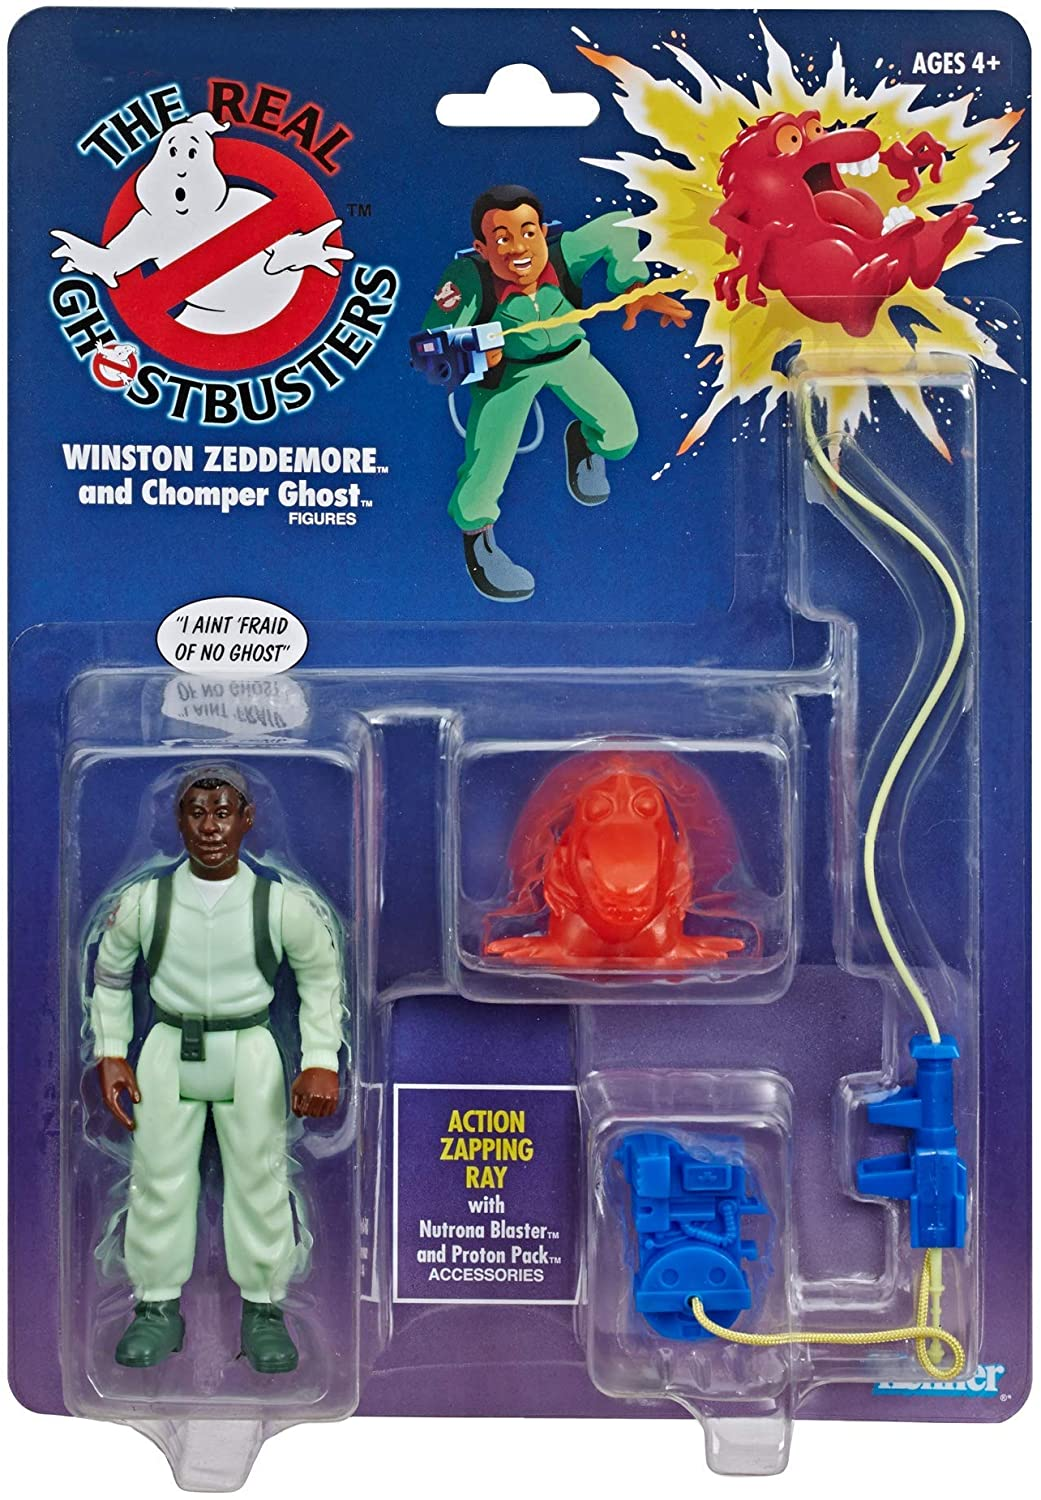 The Real Ghostbusters Kenner Classics Retro Figure - Winston Zeddemore and Chomper Ghost - Walmart Exclusive